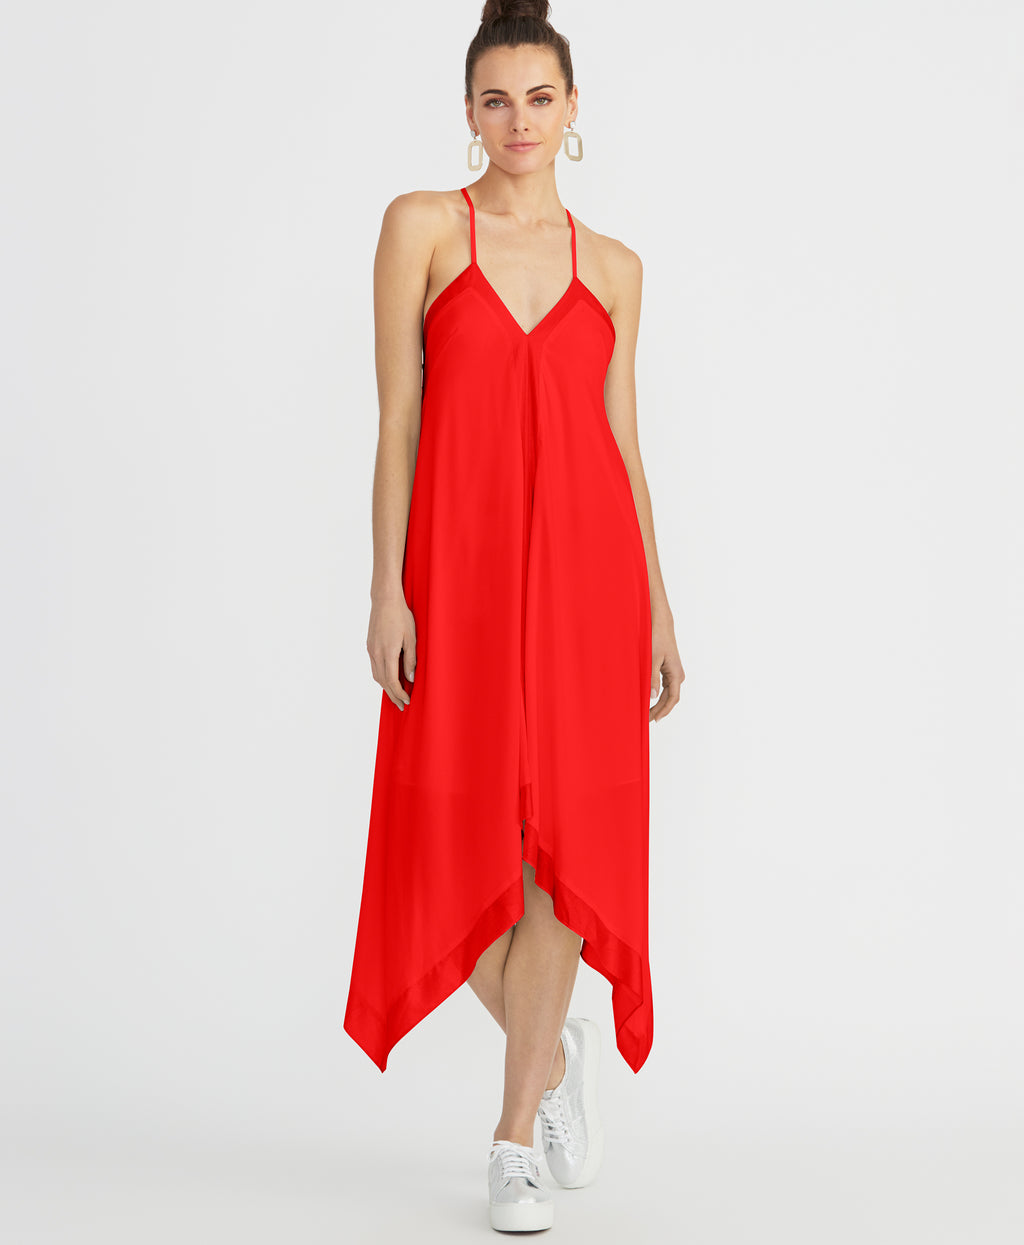 MADDELENA SCARF DRESS | RADIANT RED